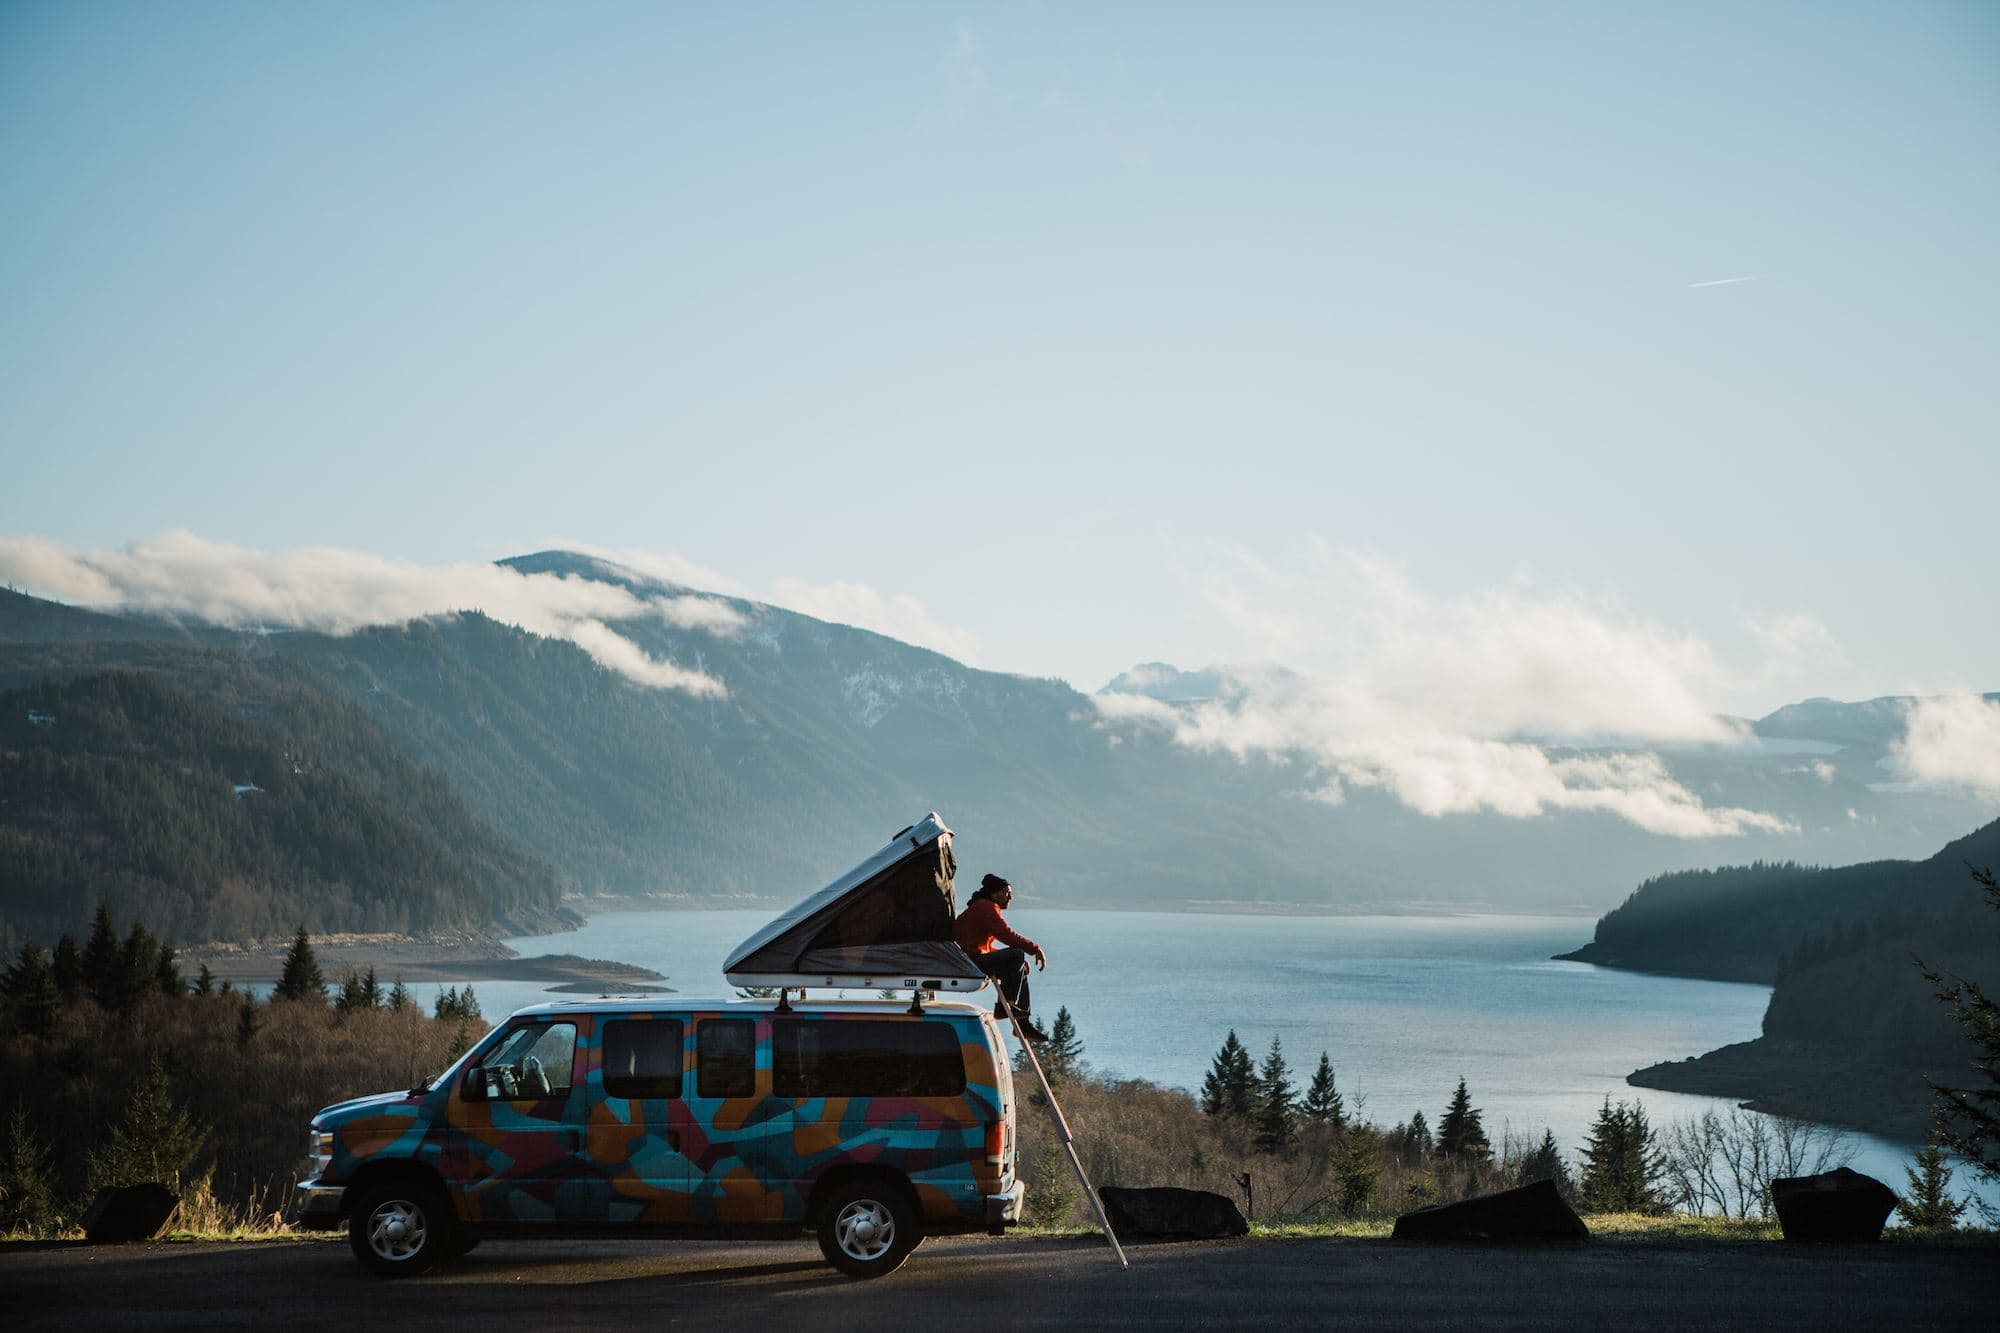 Try #vanlife out with our Escape Campervans Giveaway. Enter to win a 5 night campervan rental complete with everything you need for an epic adventure.